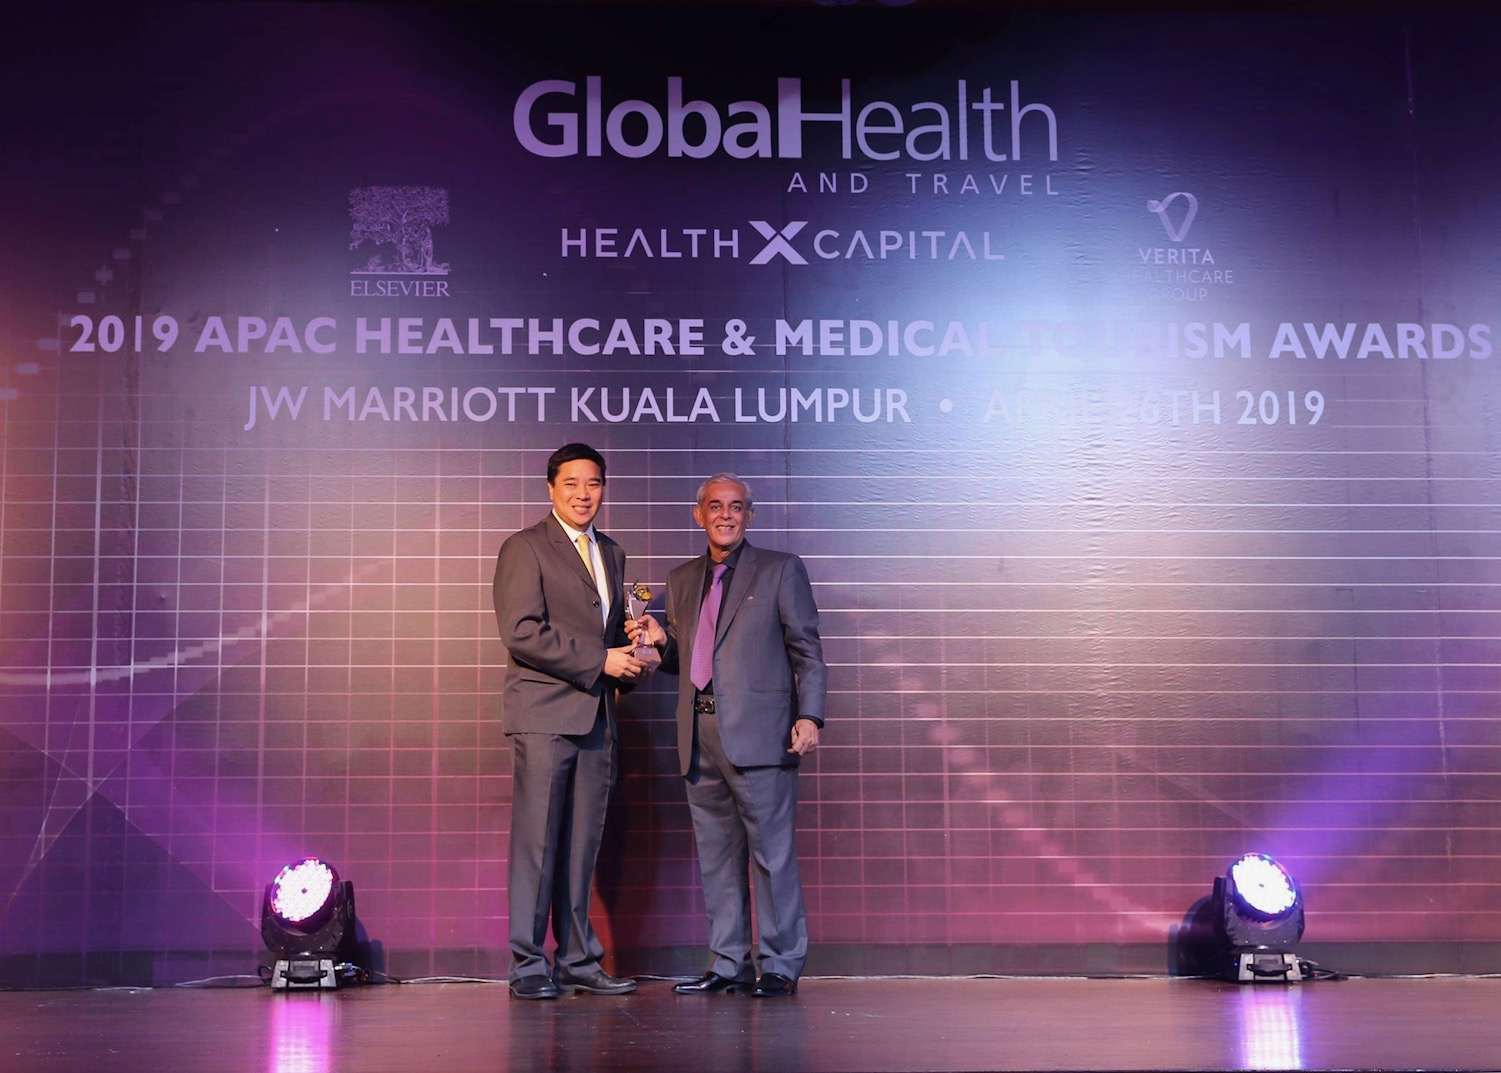 Global Health and Travel Award - 2019 APAC Healthcare & Medical Tourism Award